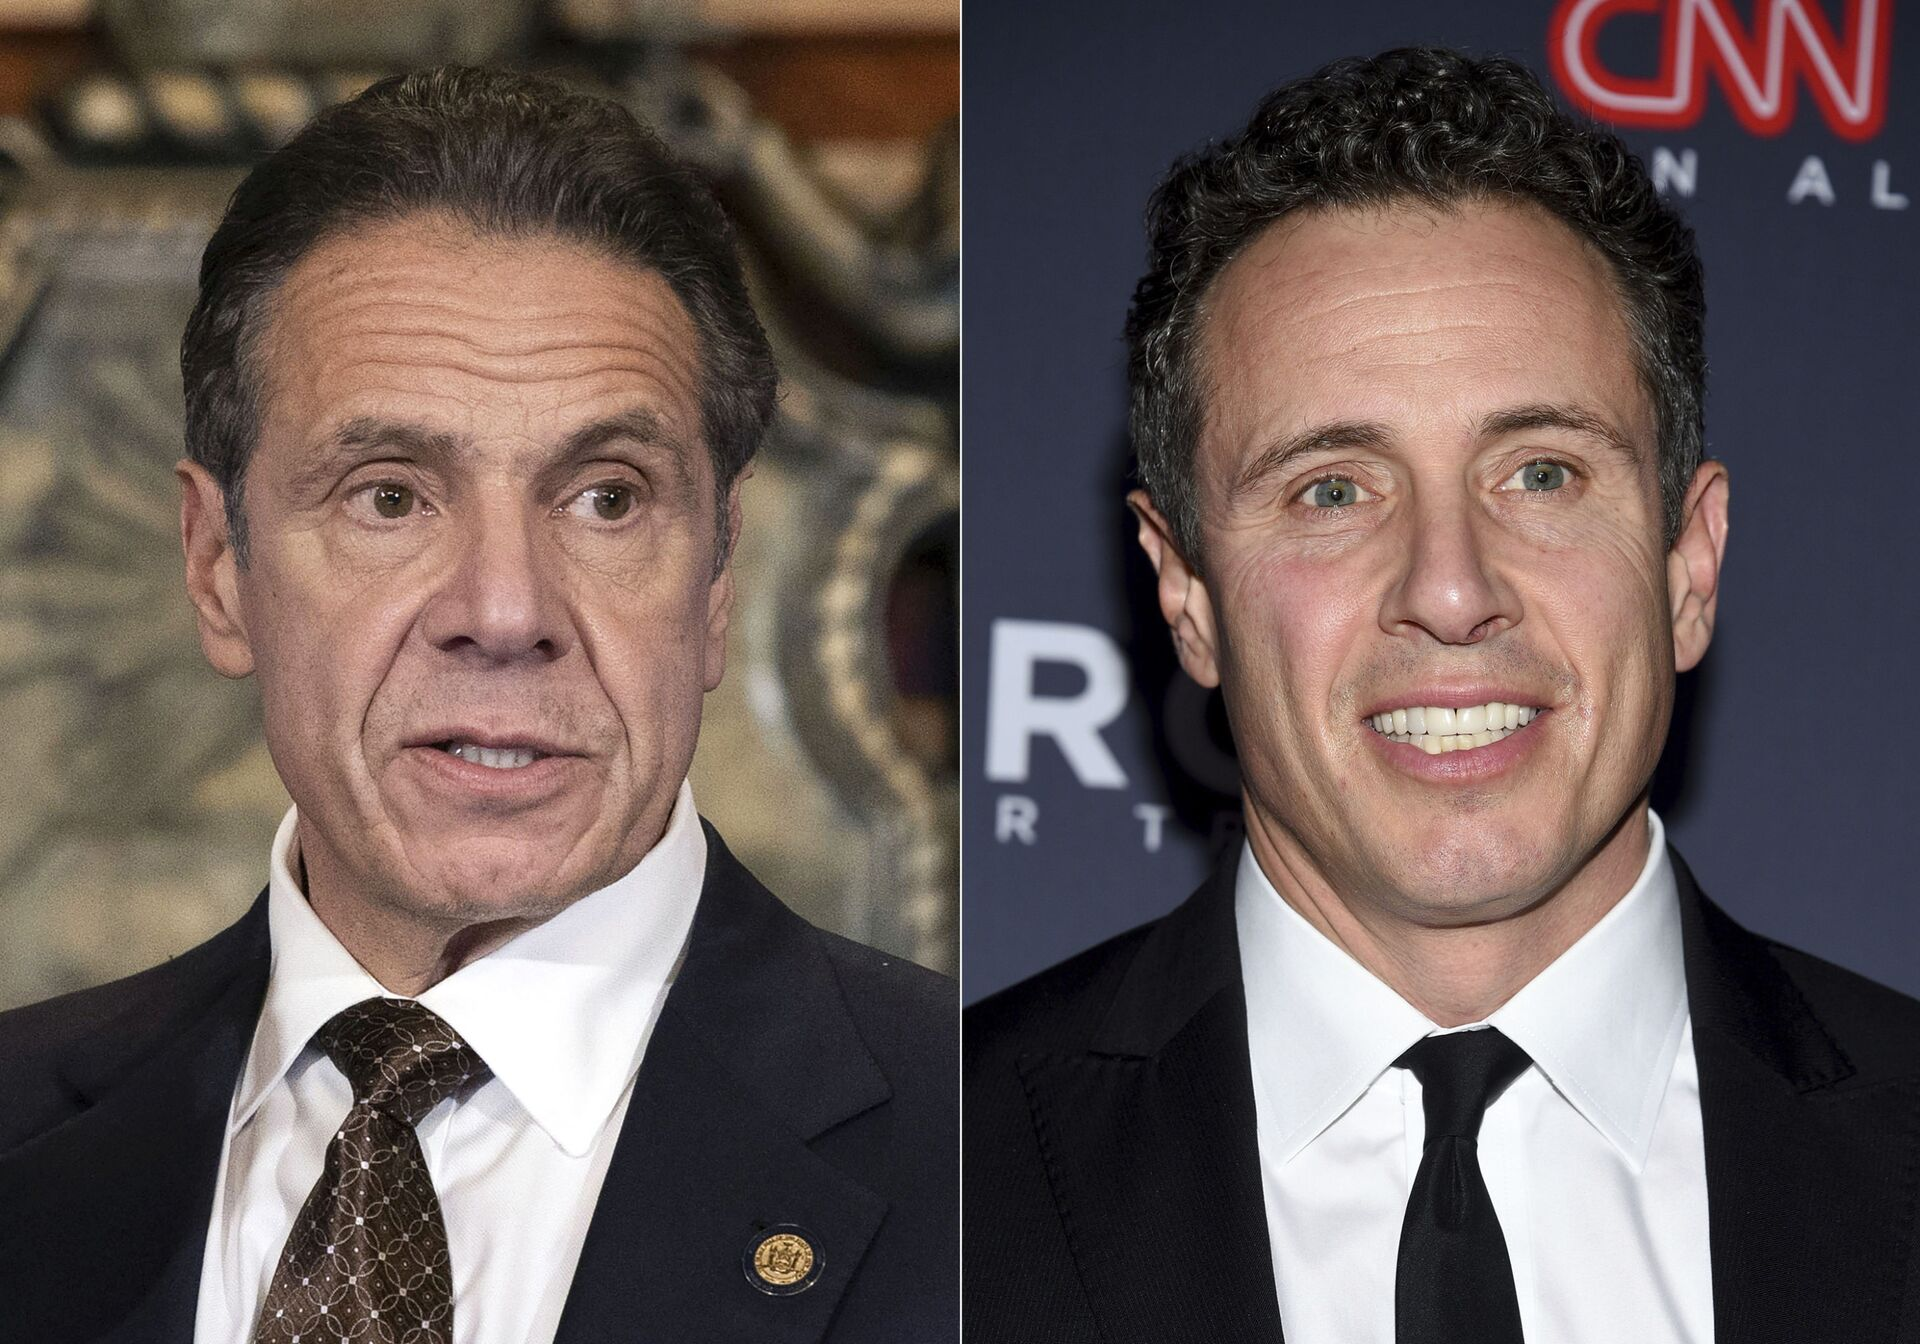 """New York Gov. Andrew M. Cuomo appears during a news conference about the COVID-19at the State Capitol in Albany, N.Y., on Dec. 3, 2020, left, and CNN anchor Chris Cuomo attends the 12th annual CNN Heroes: An All-Star Tribute at the American Museum of Natural History in New York on Dec. 9, 2018. CNN said Thursday, May 20, 2021 it was """"inappropriate"""" for anchor Chris Cuomo to have been involved in phone calls with the staff of his brother, New York Gov. Andrew Cuomo, where strategies on how the governor should respond to sexual harassment allegations were allegedly discussed. - Sputnik International, 1920, 07.09.2021"""